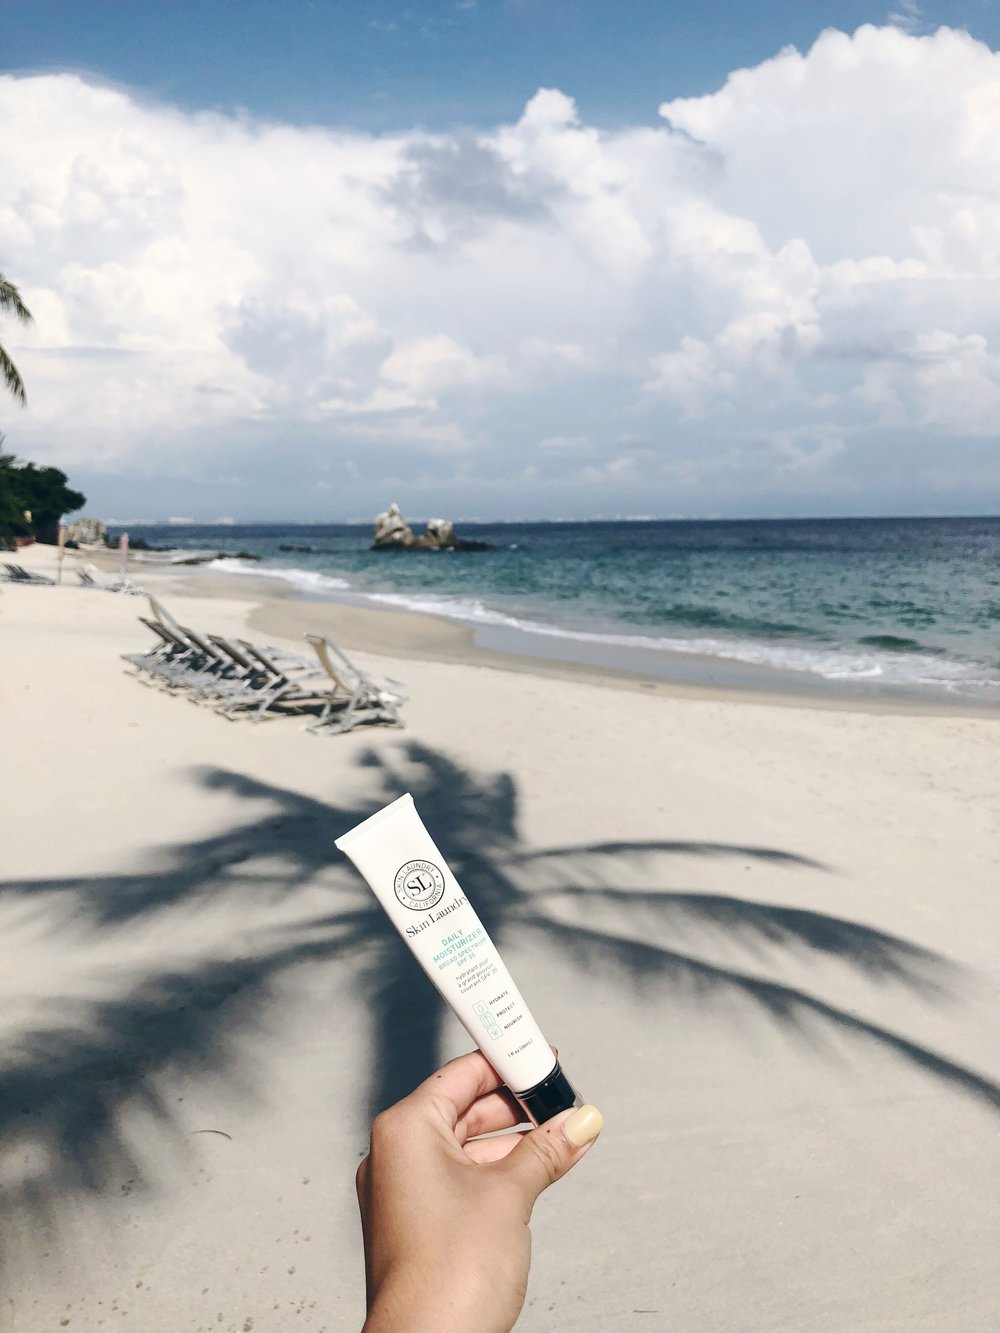 Skin Laundry SPF (Travel-Size) - SL's travel-sized SPF fits in any small travel pouch and makes it easy to reapply without lugging around a large bag. This daily moisturizer with SPF 35 even has Arnica montana extract to heal while it protects.